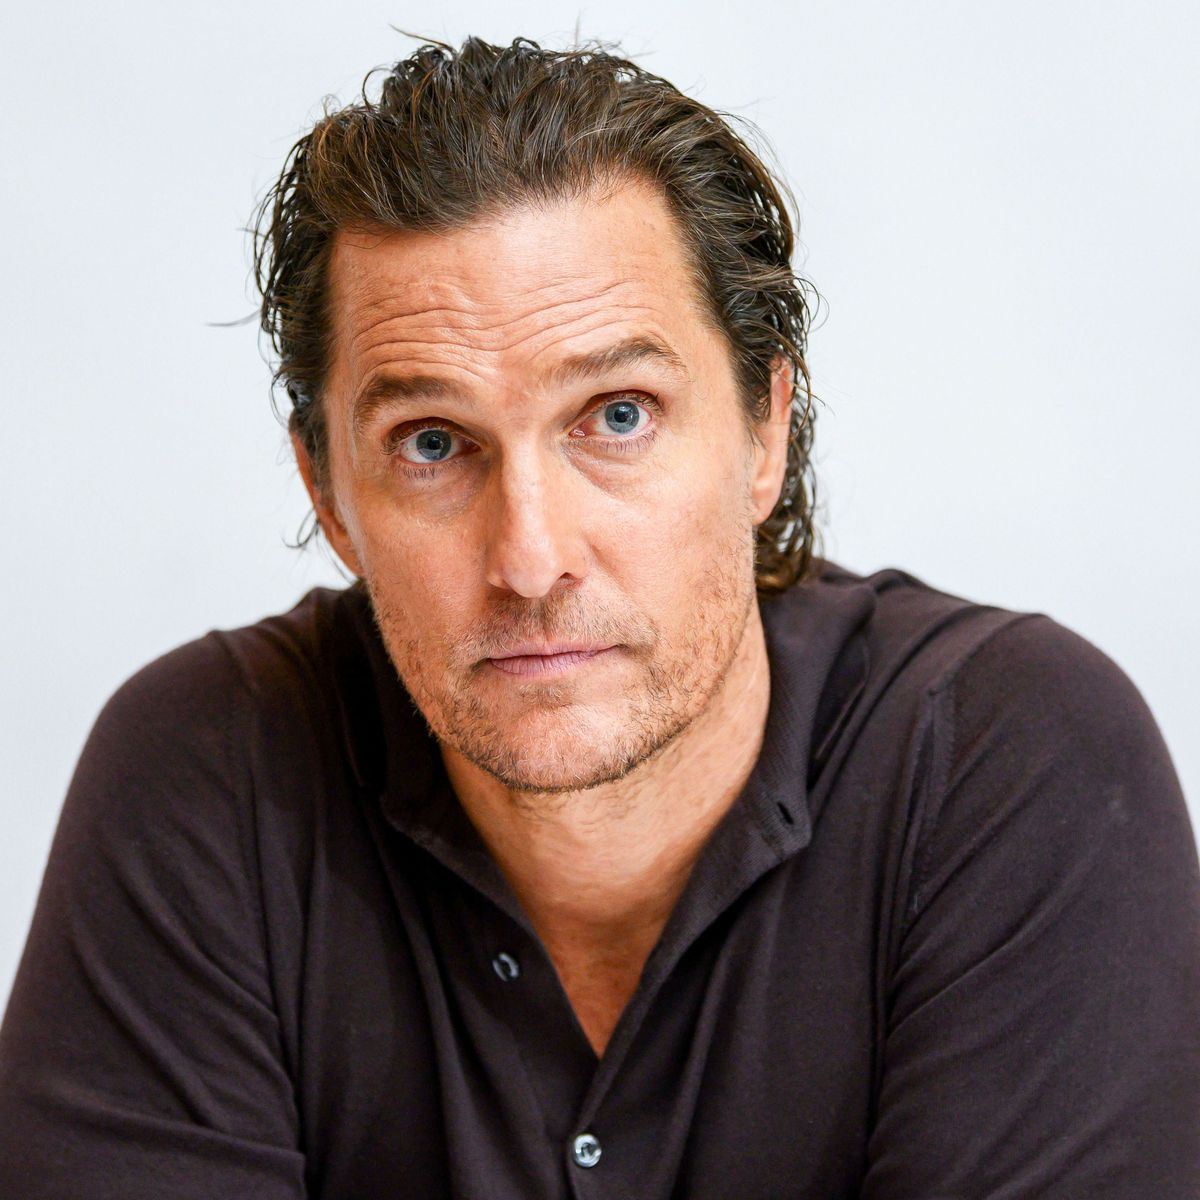 Matthew McConaughey Talks The Possibility Of Him Entering Politics And Running For Governor Of Texas!